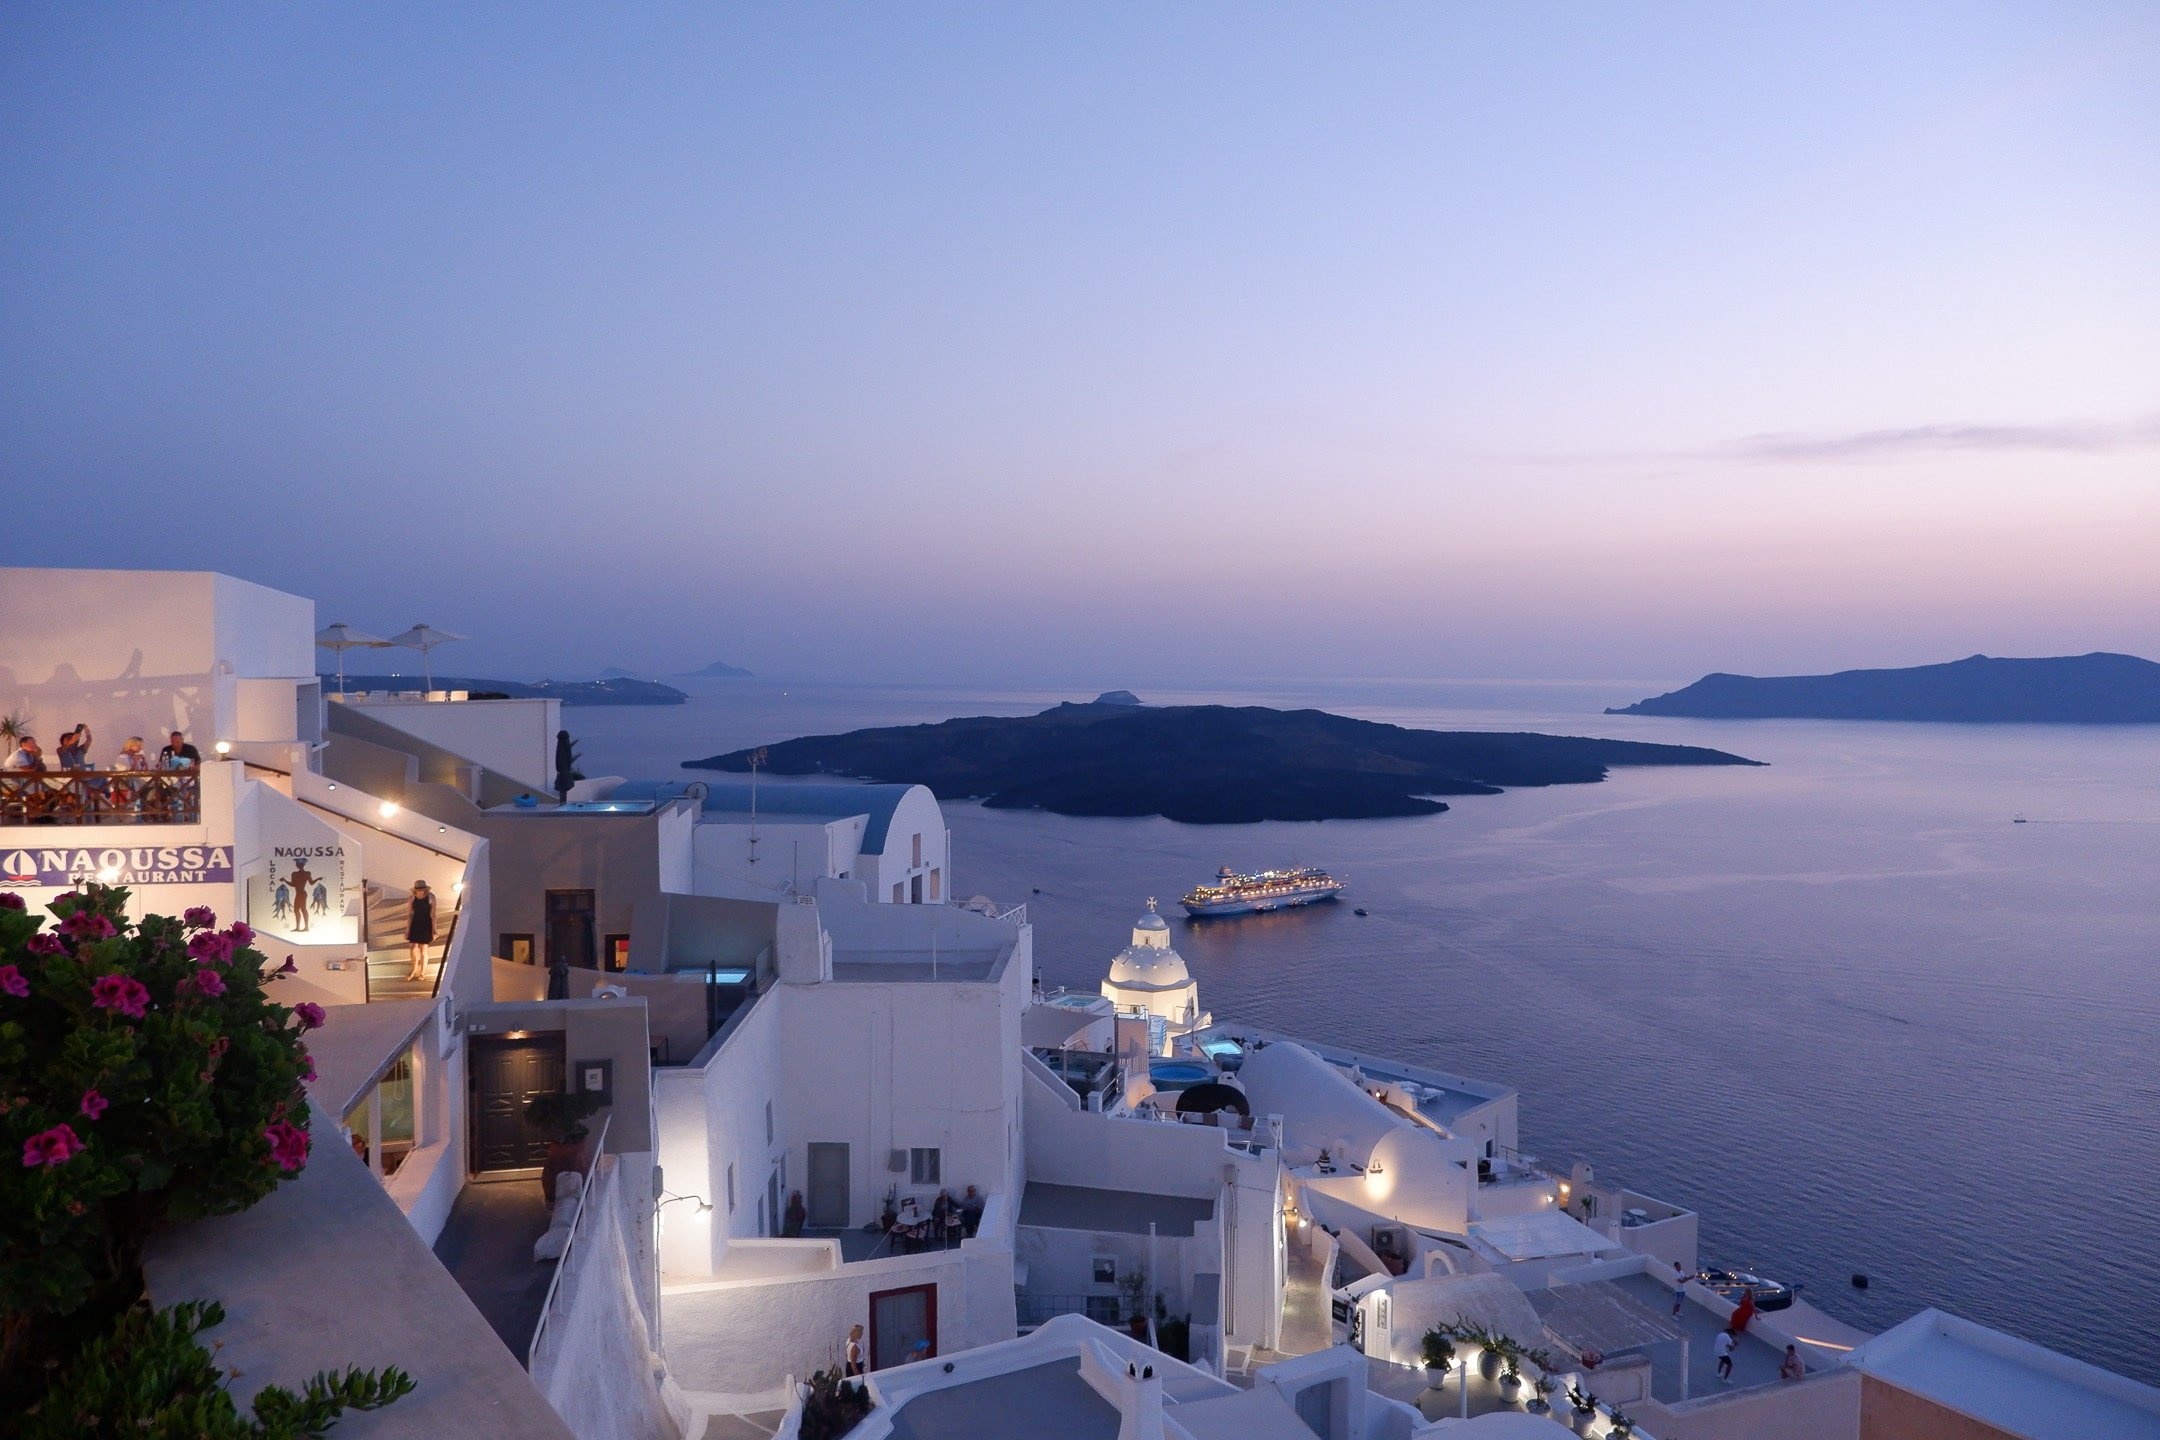 Greece is a destination that could be explored forever. These bucket list ideas will help with the planning of your next trip to Greece and inspire you to discover yet another new part of this amazing country!